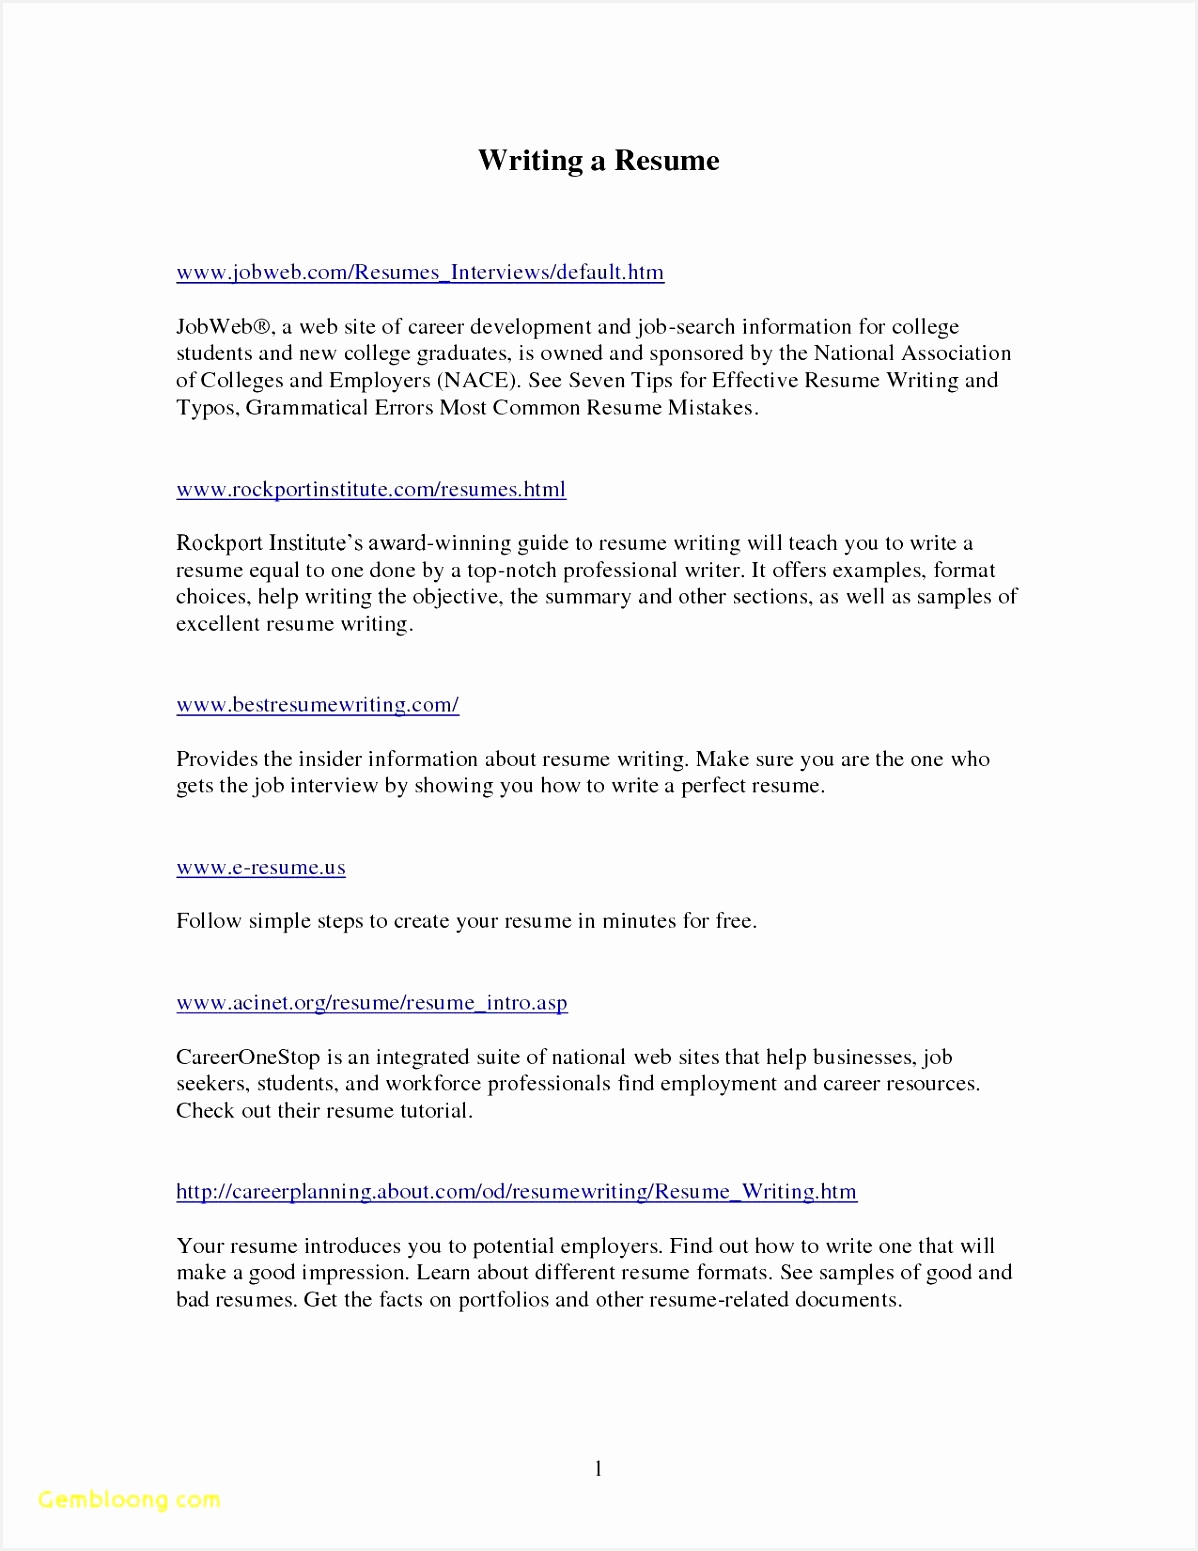 Examples Free Design Template Restaurant Manager Cover Letter Lovely 13 Awesome Cover Letter for Internship In Marketing Resume15511198tbrzr